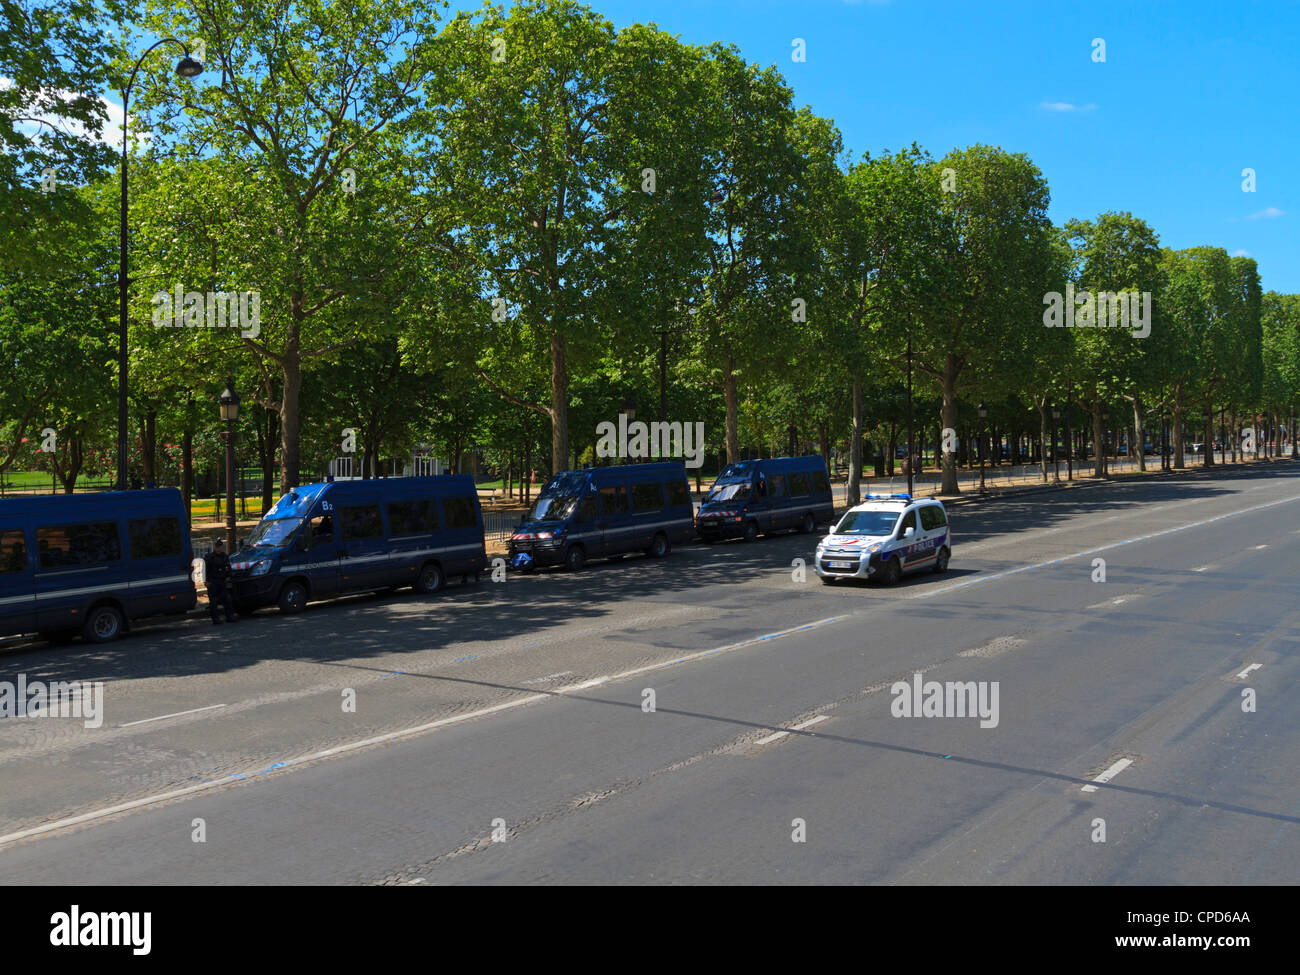 Gendarmerie vans parked on the Champs Elysee and a police car passing, Paris - Stock Image